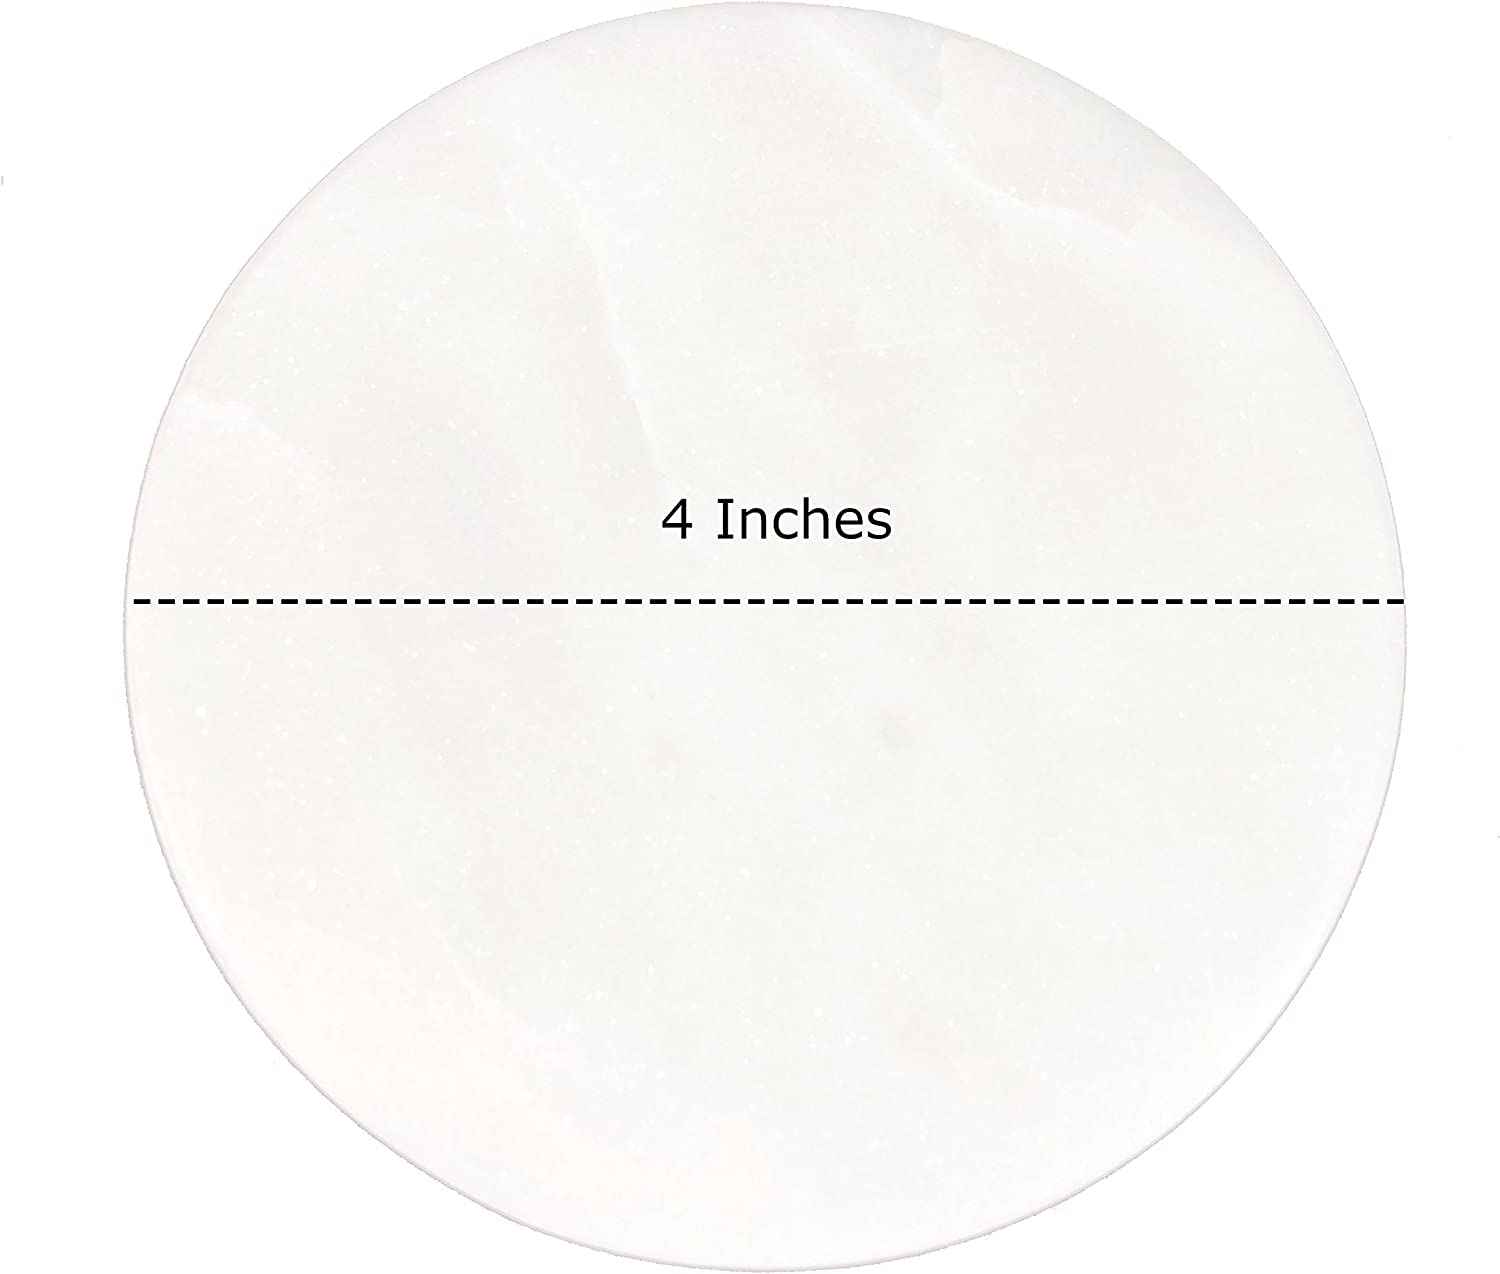 Midwest Exporters Set Of 4 White Marble Coasters Pattern Round Coaster 4 Inches In Diameter For Drinks Bar Housewarming Stone Gifts Home Décor Accents Coasters